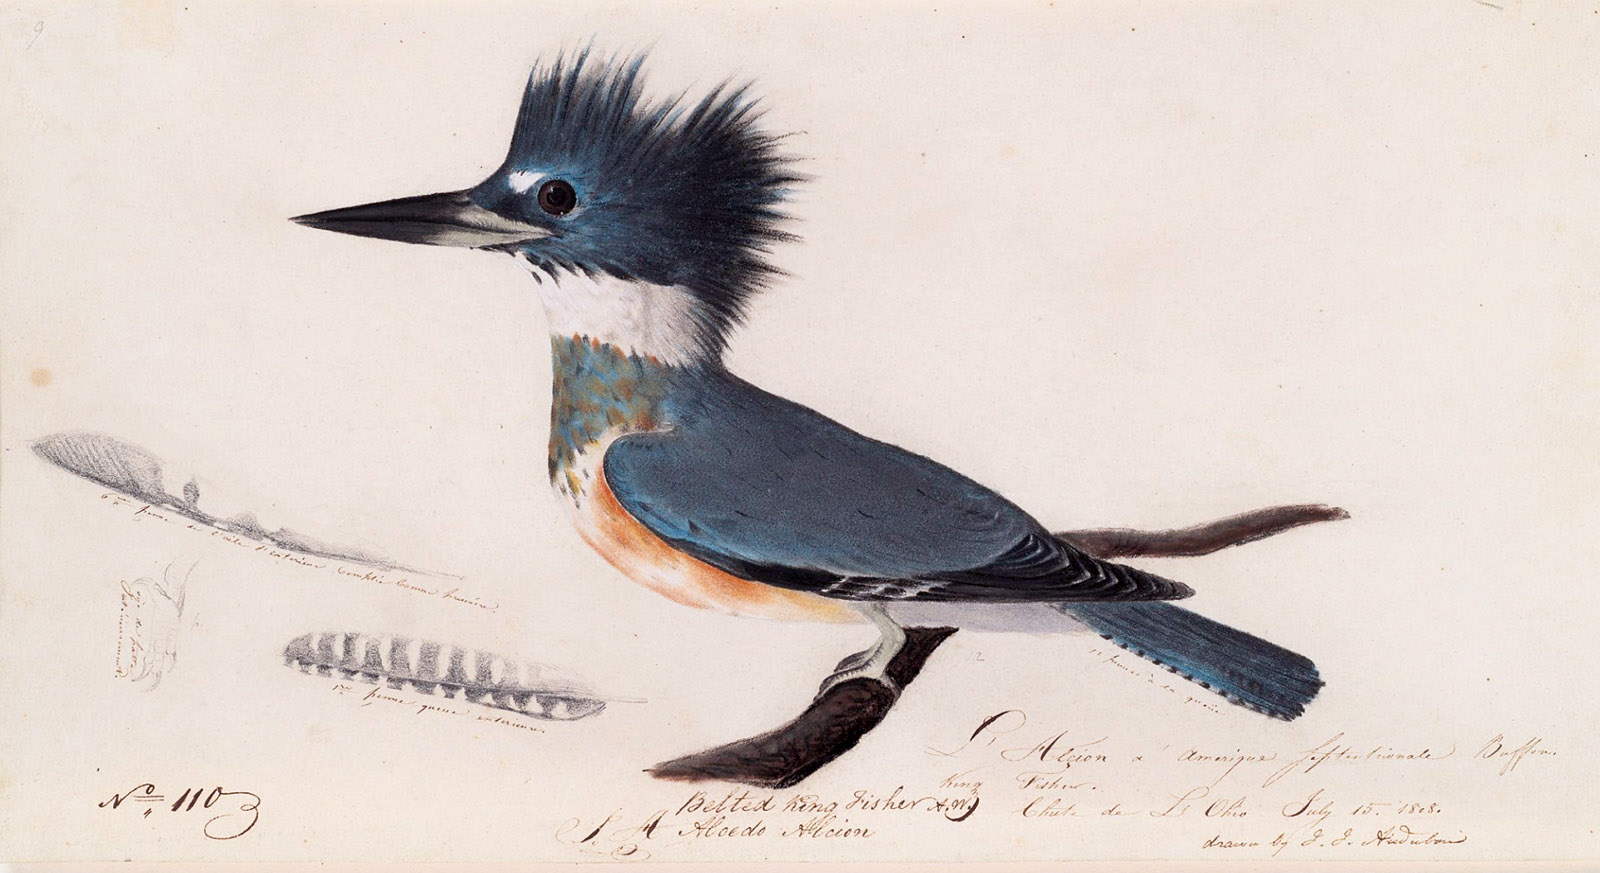 A belted kingfisher; painting by John James Audubon